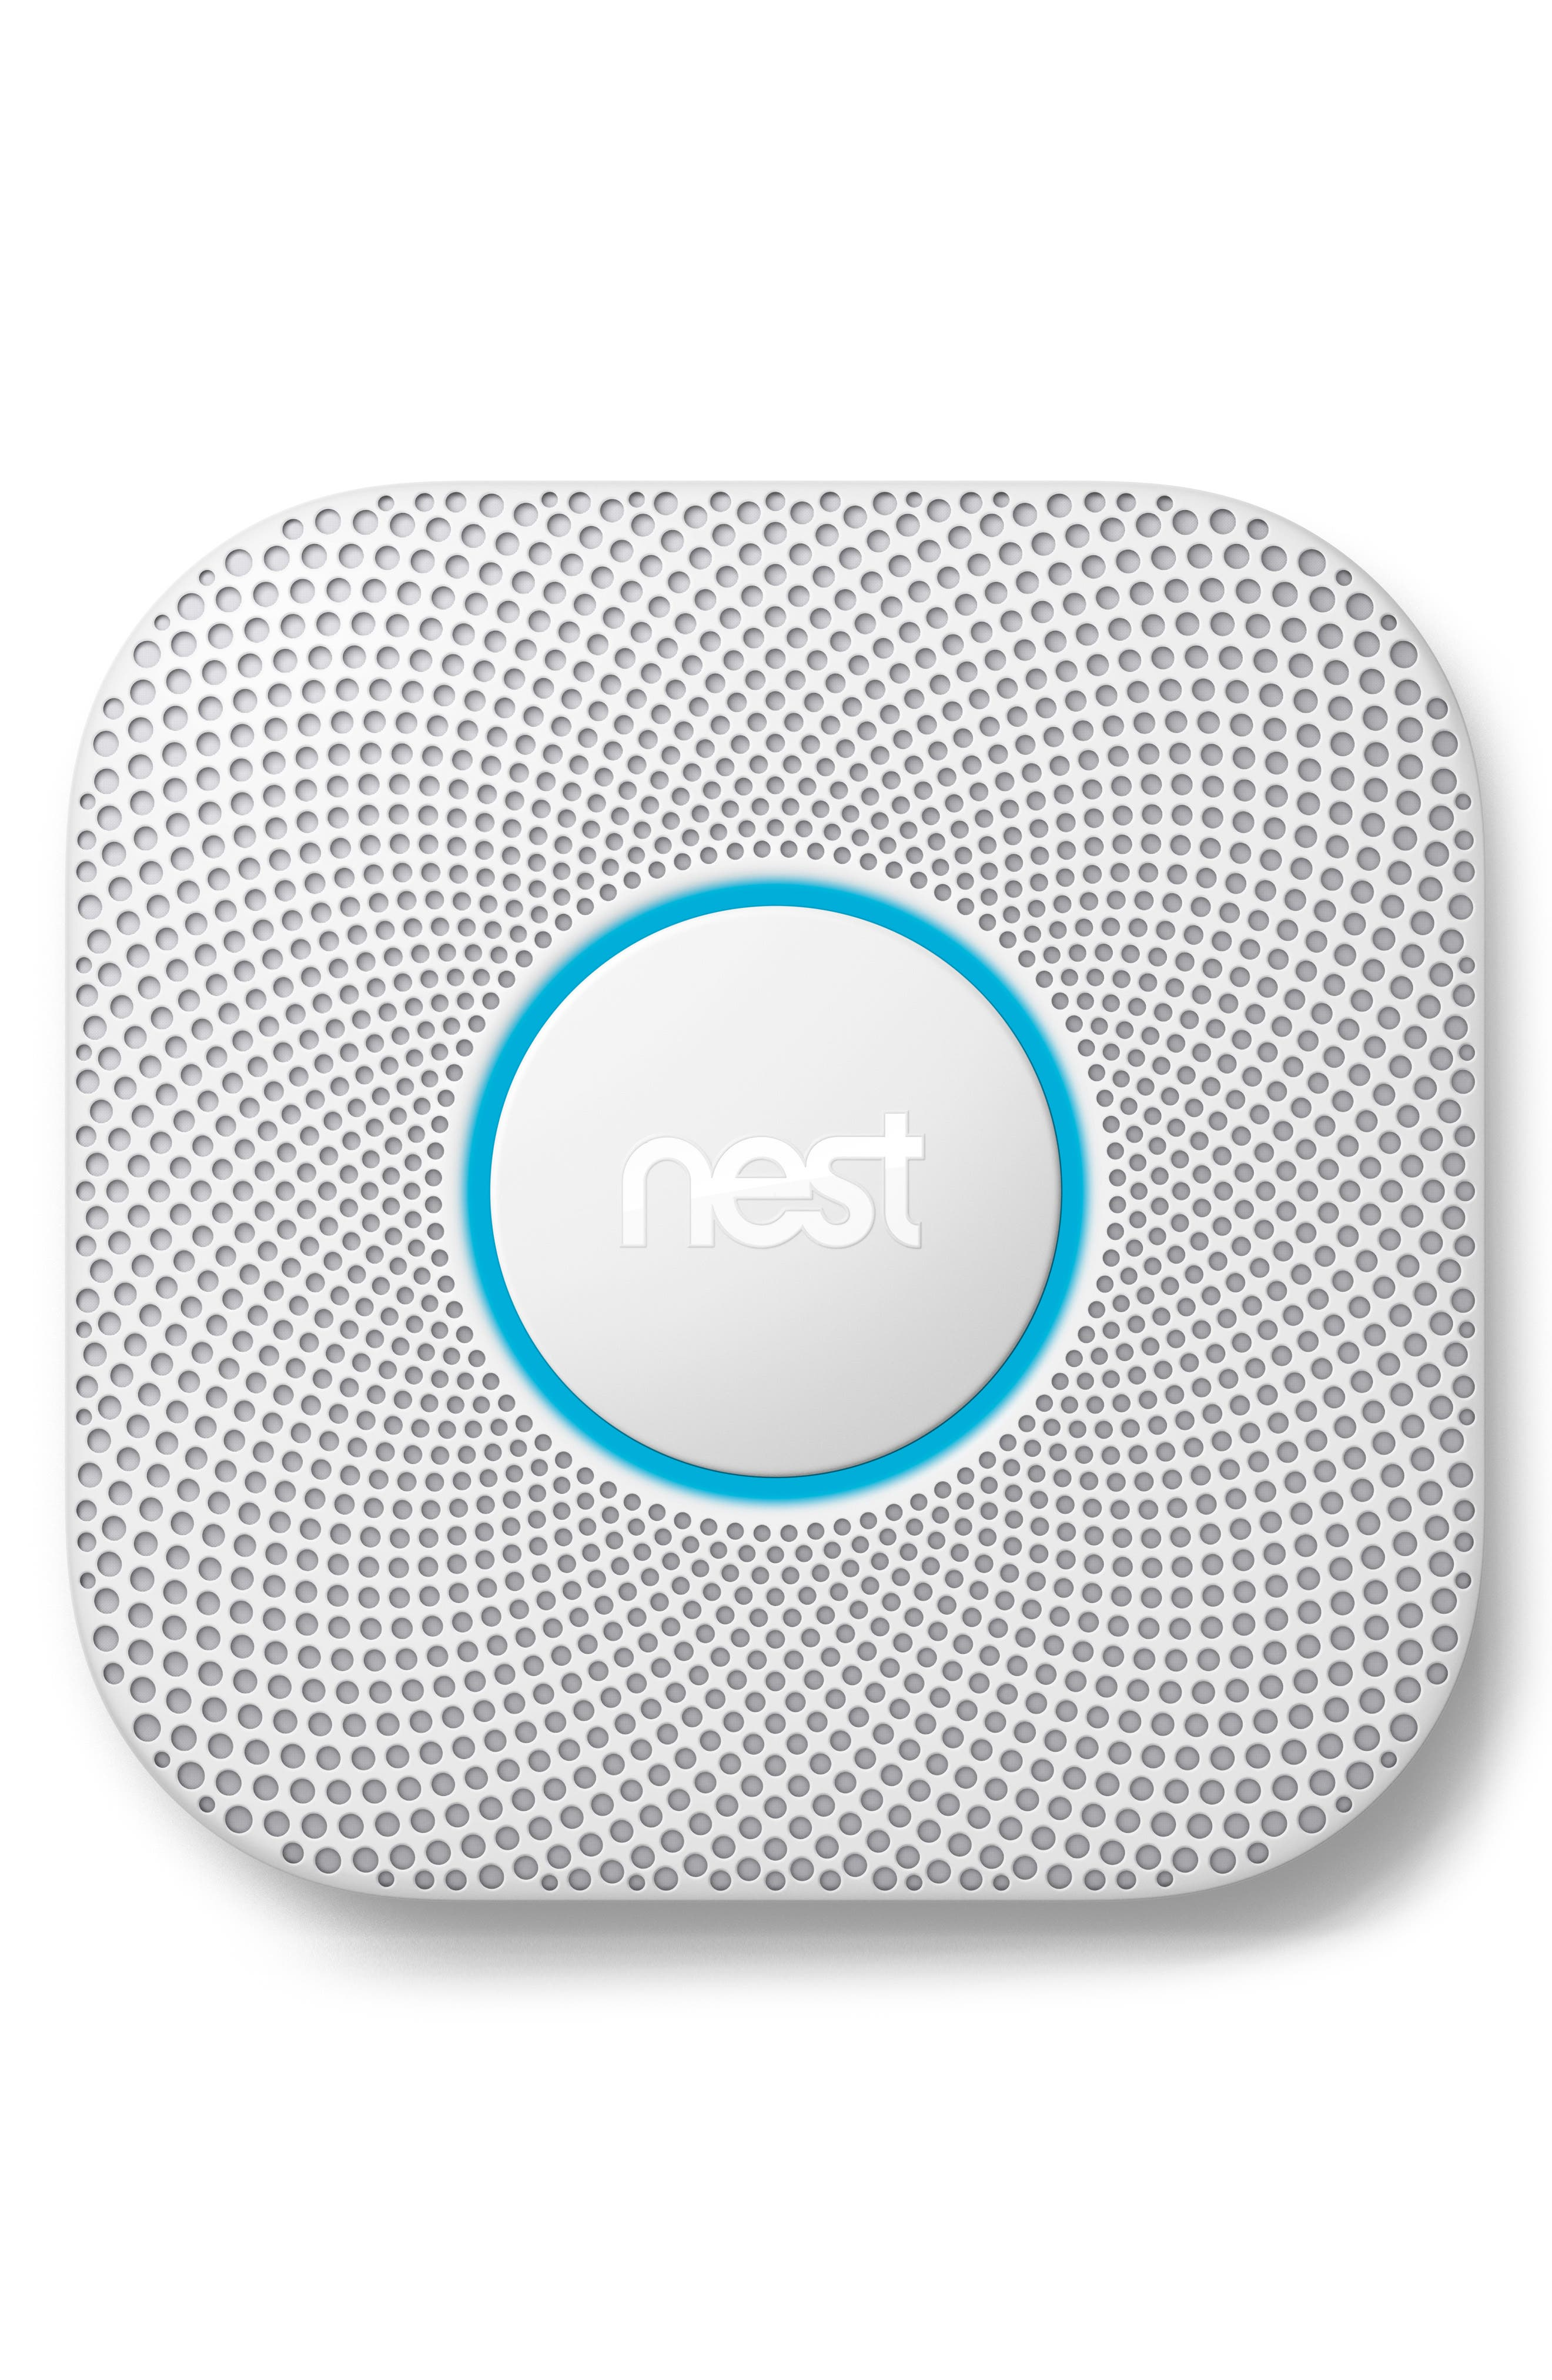 NEST Protect Smoke & Carbon Monoxide Alarm, Main, color, BATTERY OPERATED